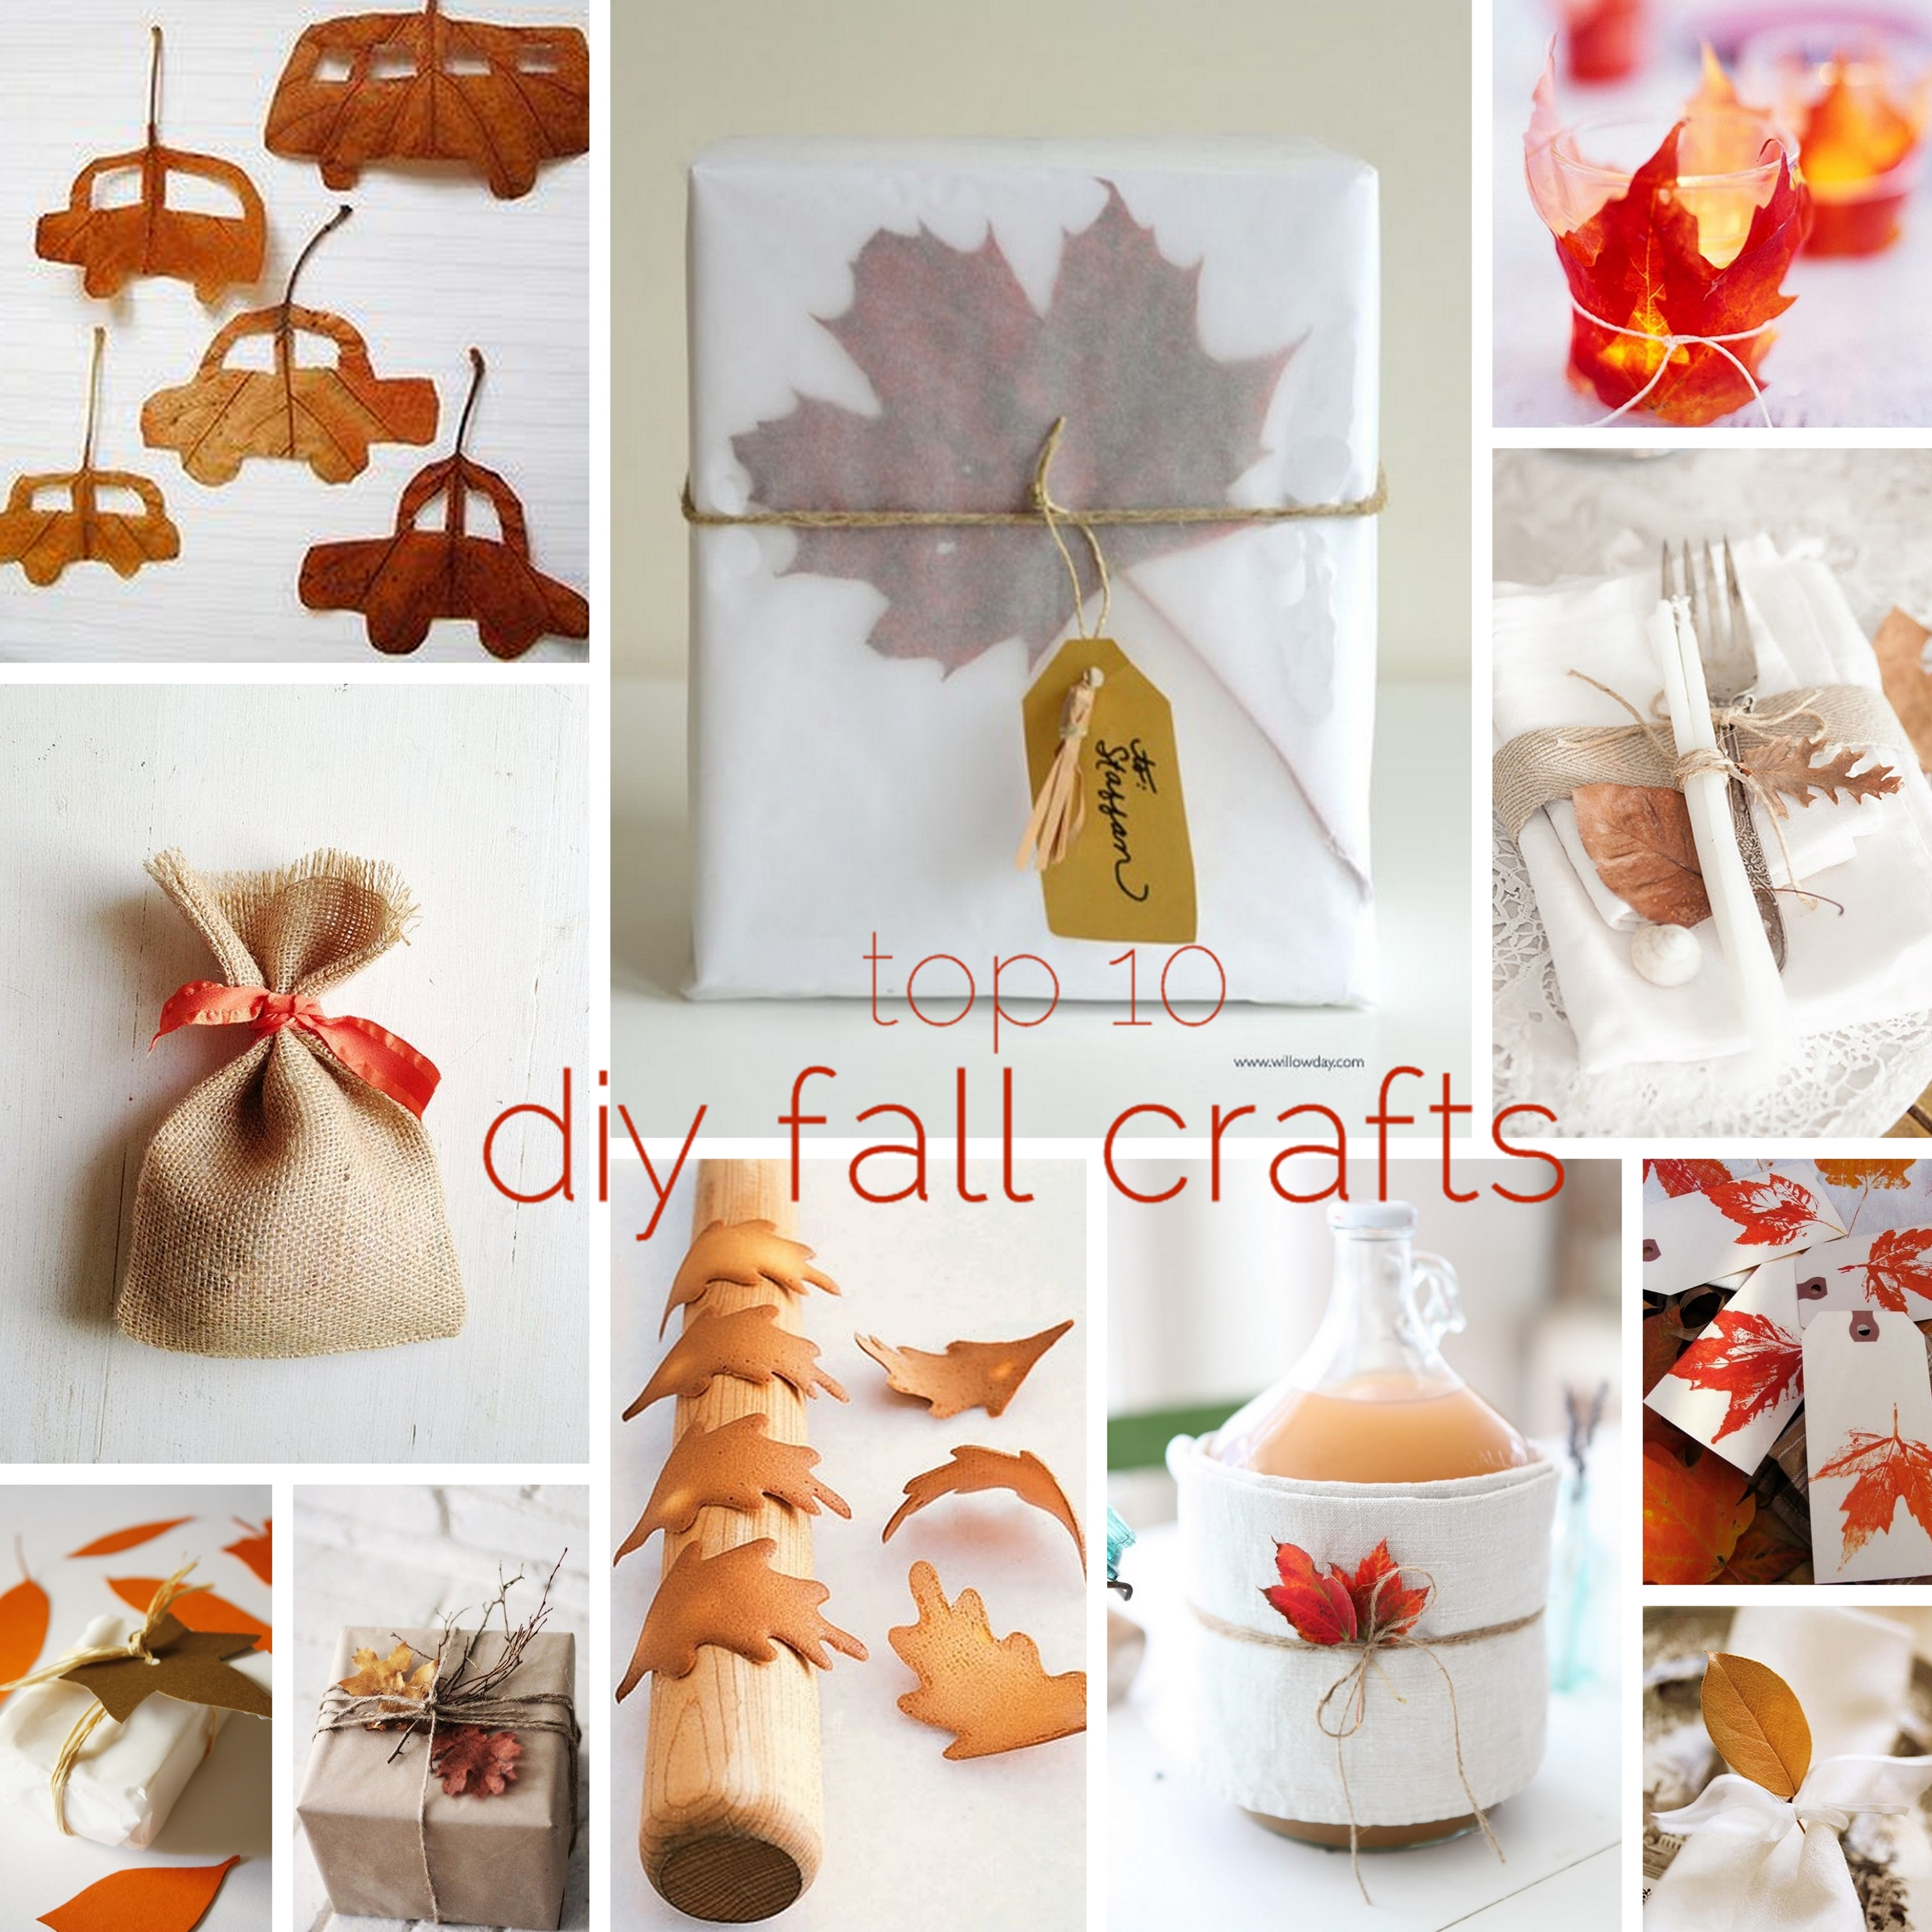 top 10 diy crafts for fall